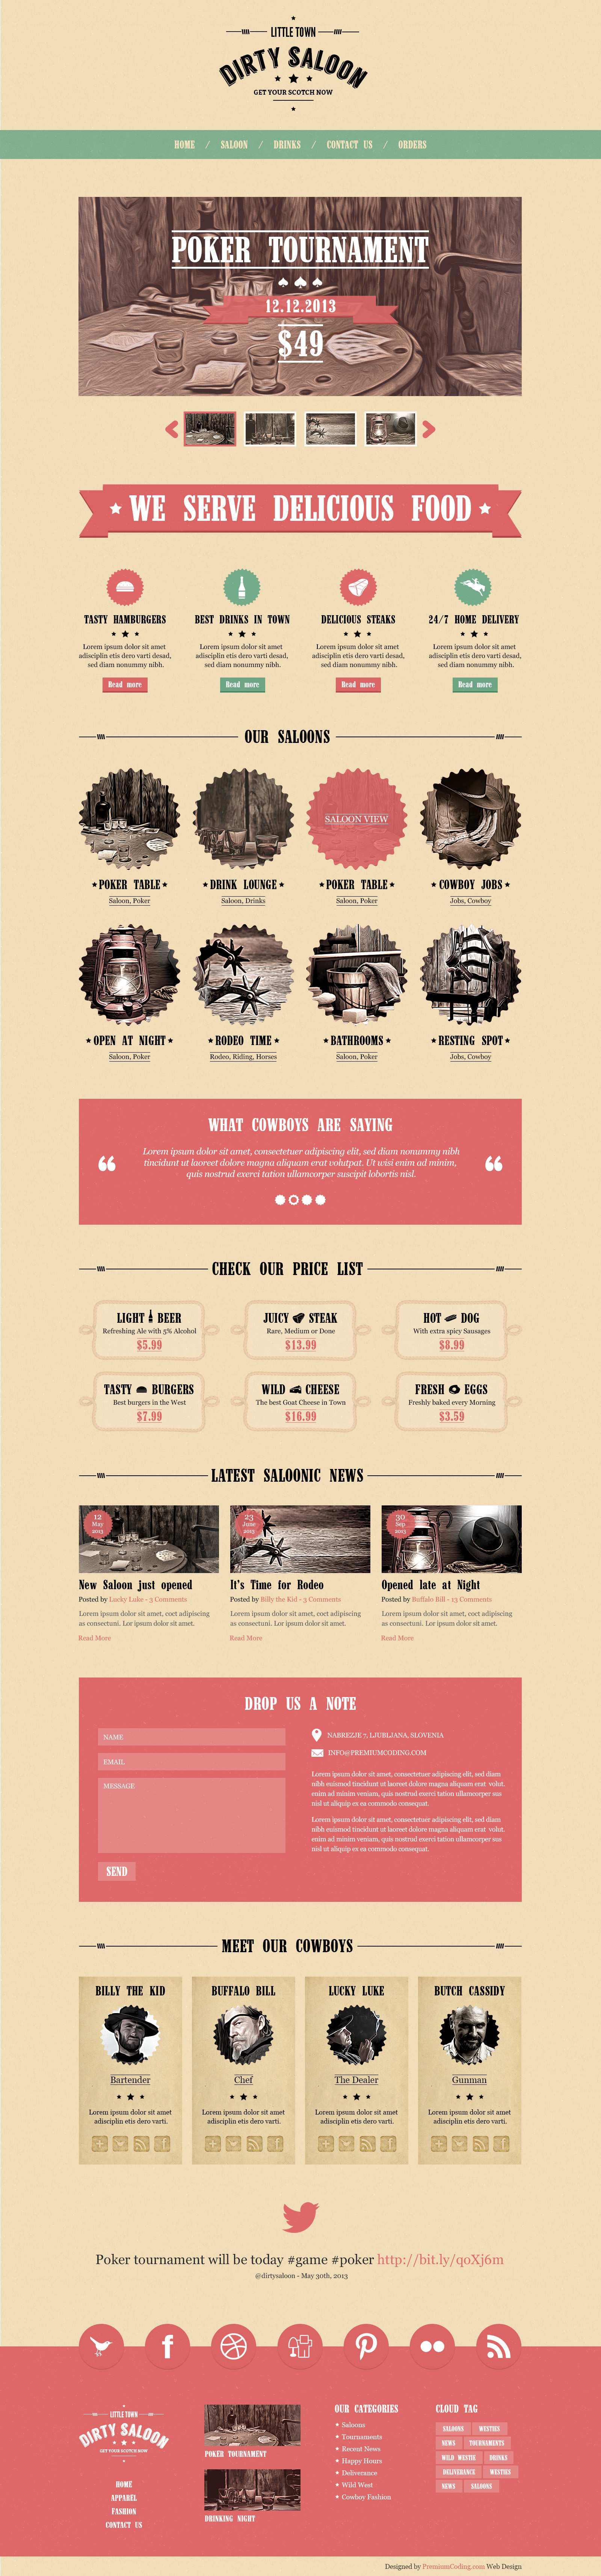 Dirty Saloon Website Template